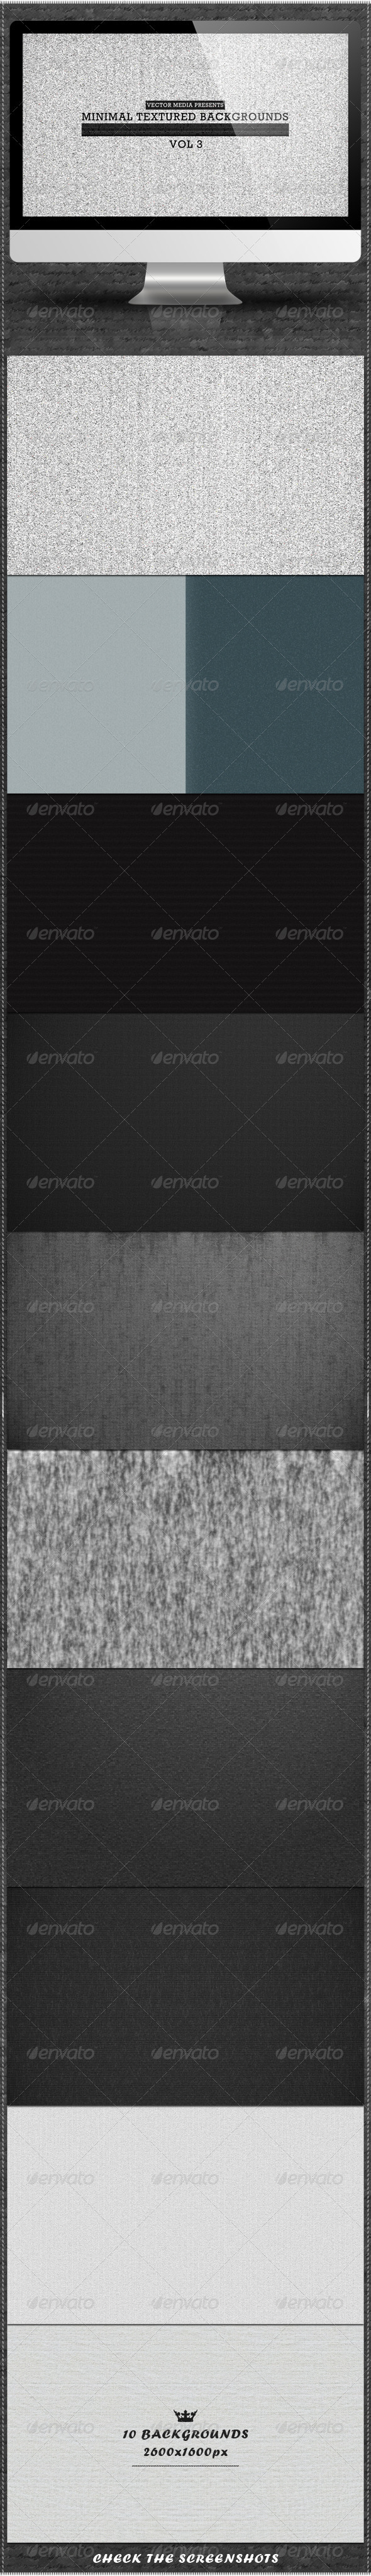 GraphicRiver Minimal Textured Backgrounds Vol 3 3856285